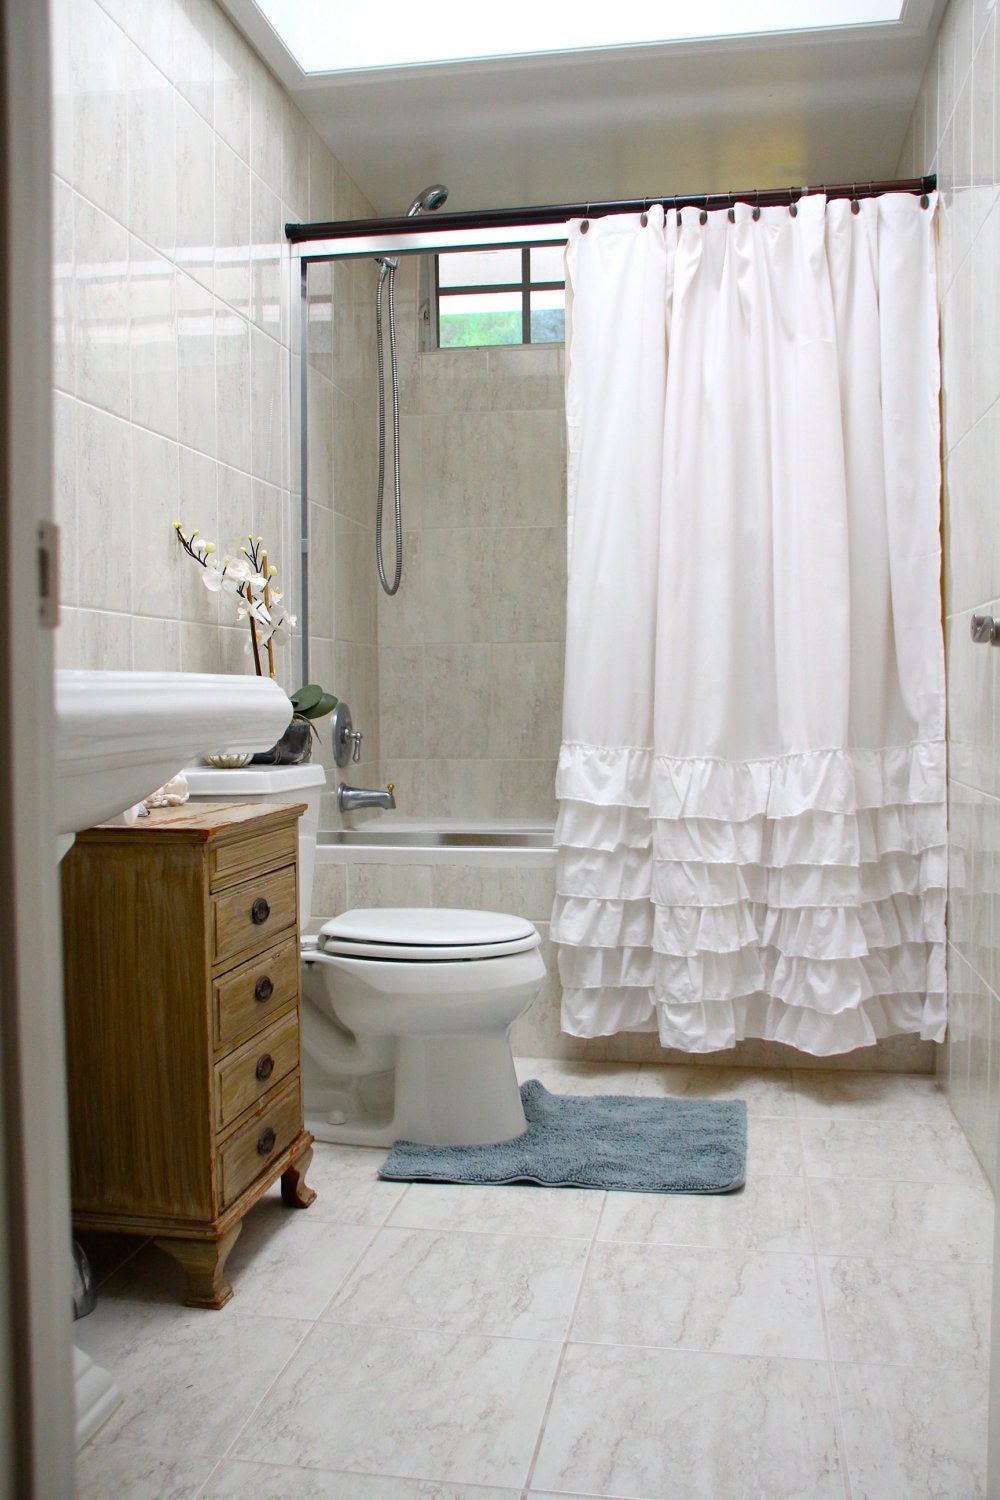 White Ruffled Shower Curtain 70 X 72 Standard By